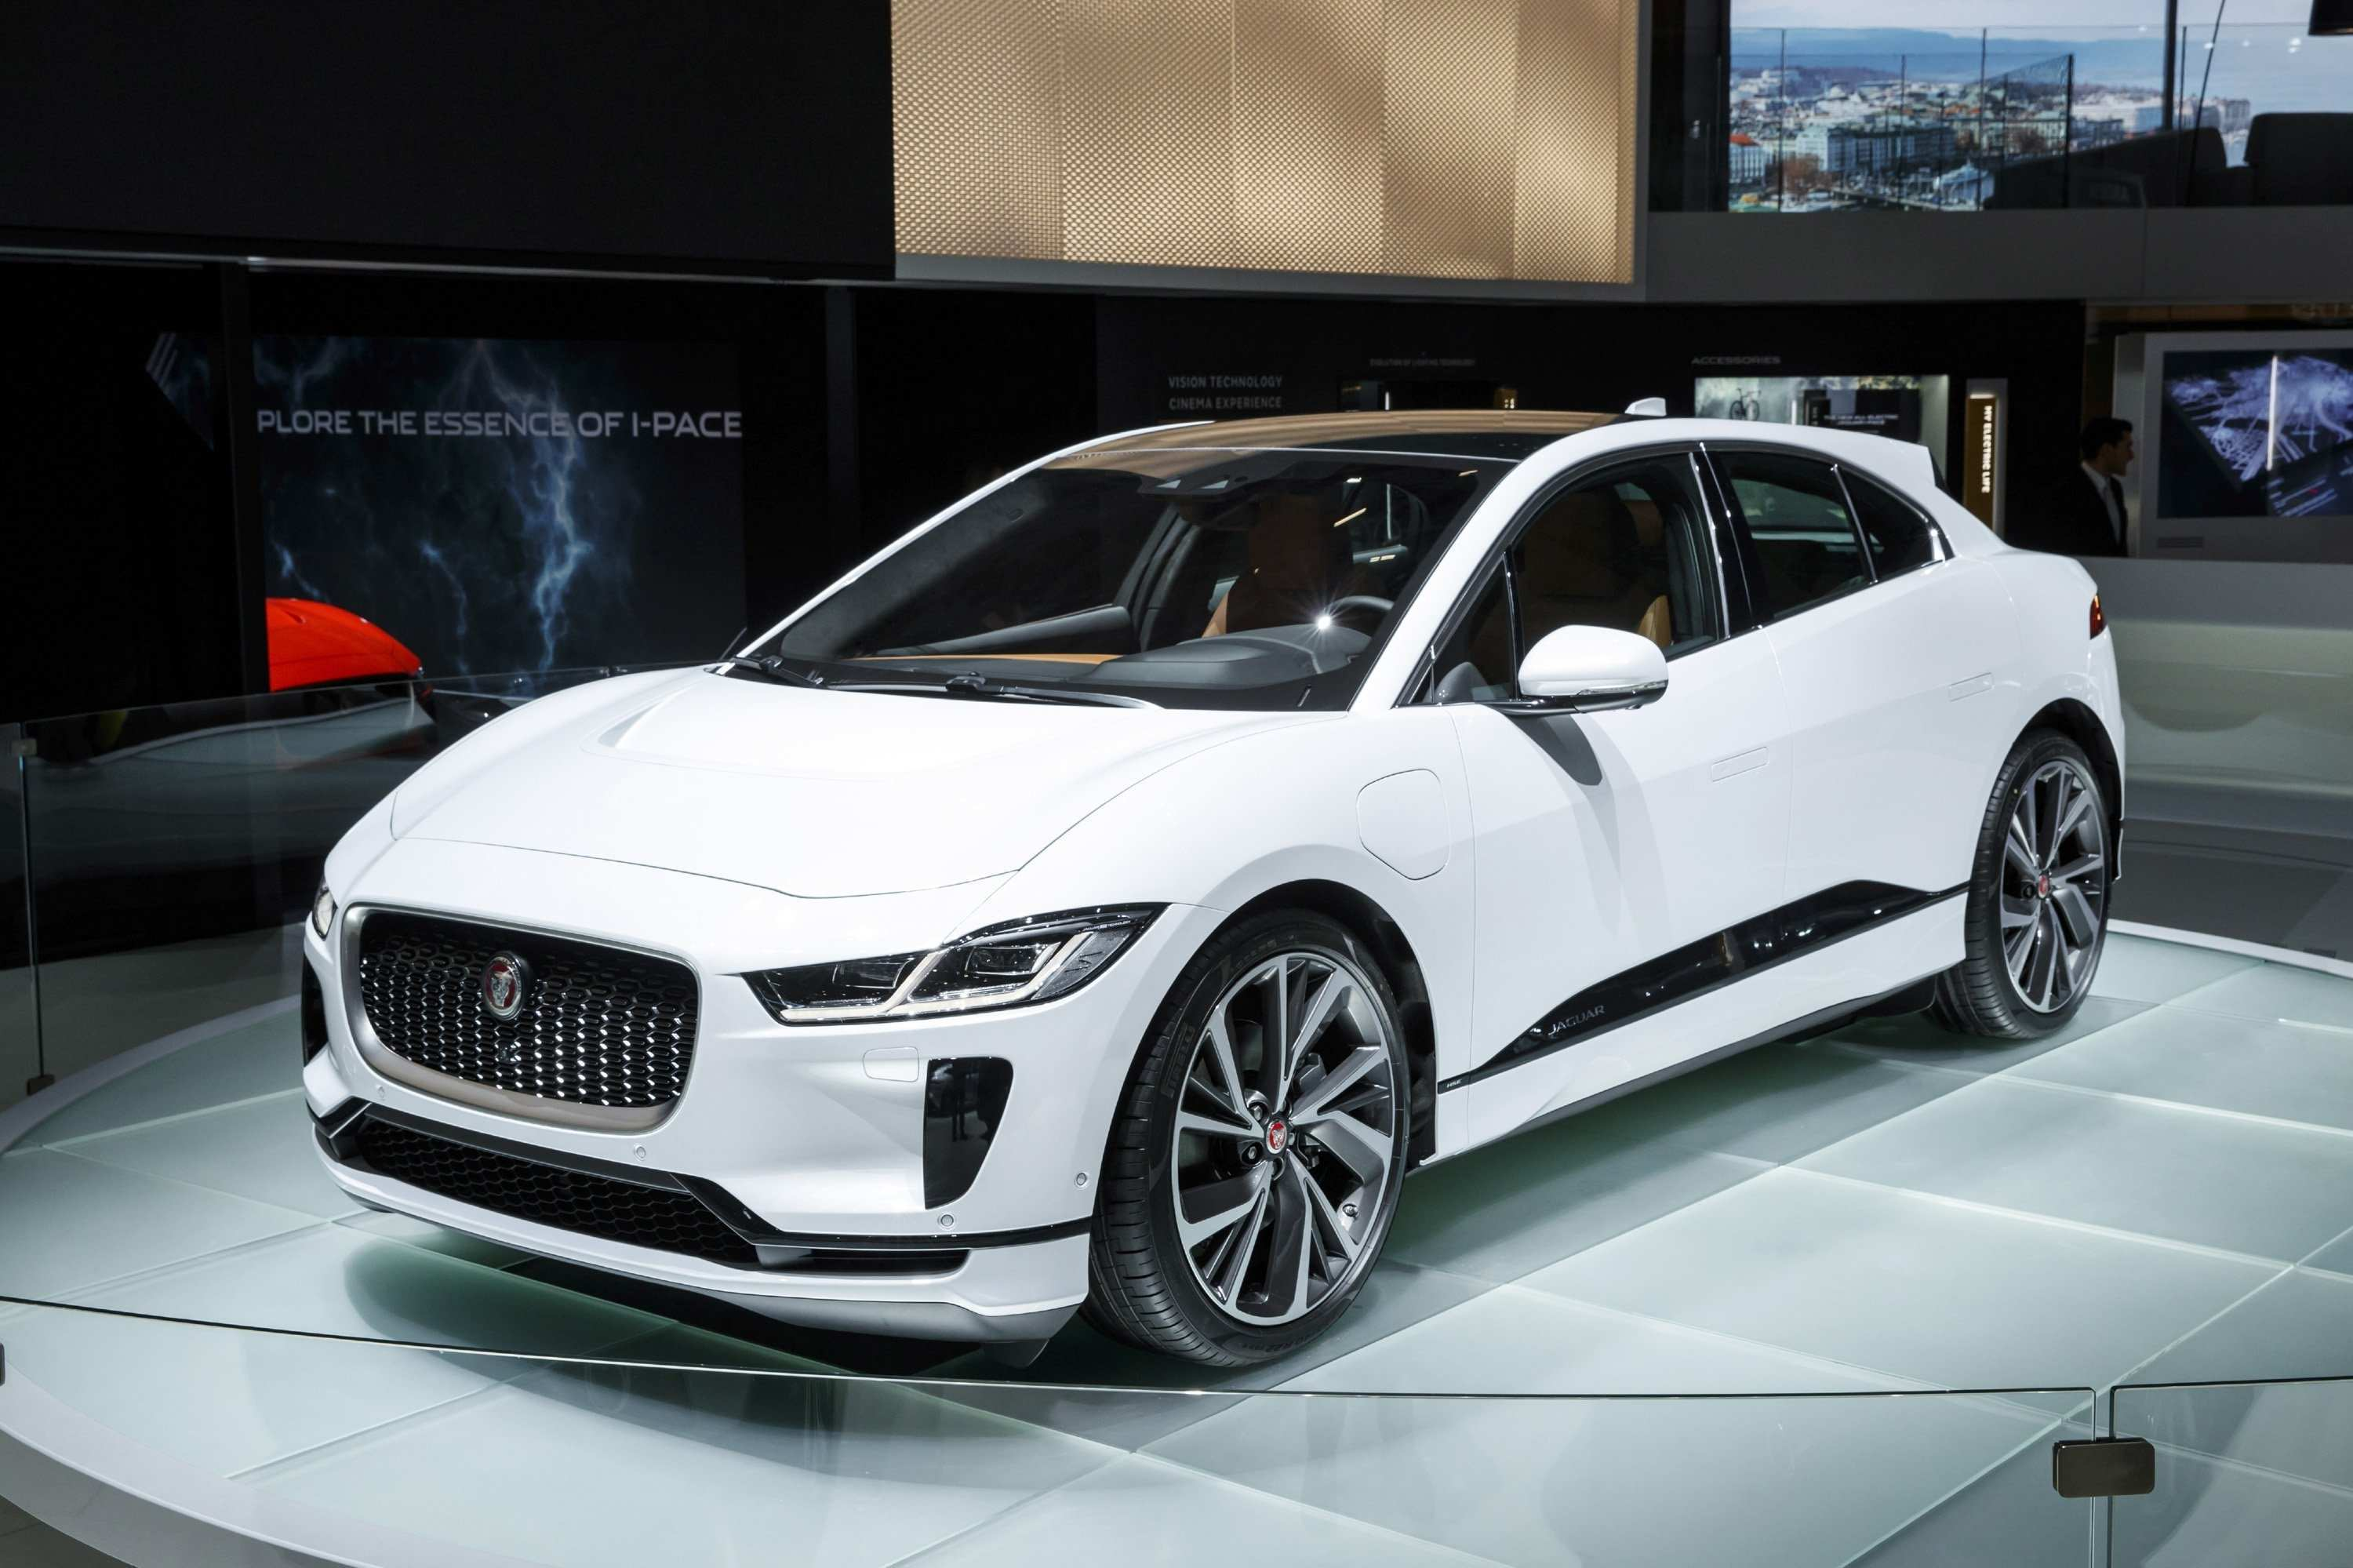 77 Great 2019 Jaguar I Pace Release Date Rumors with 2019 Jaguar I Pace Release Date